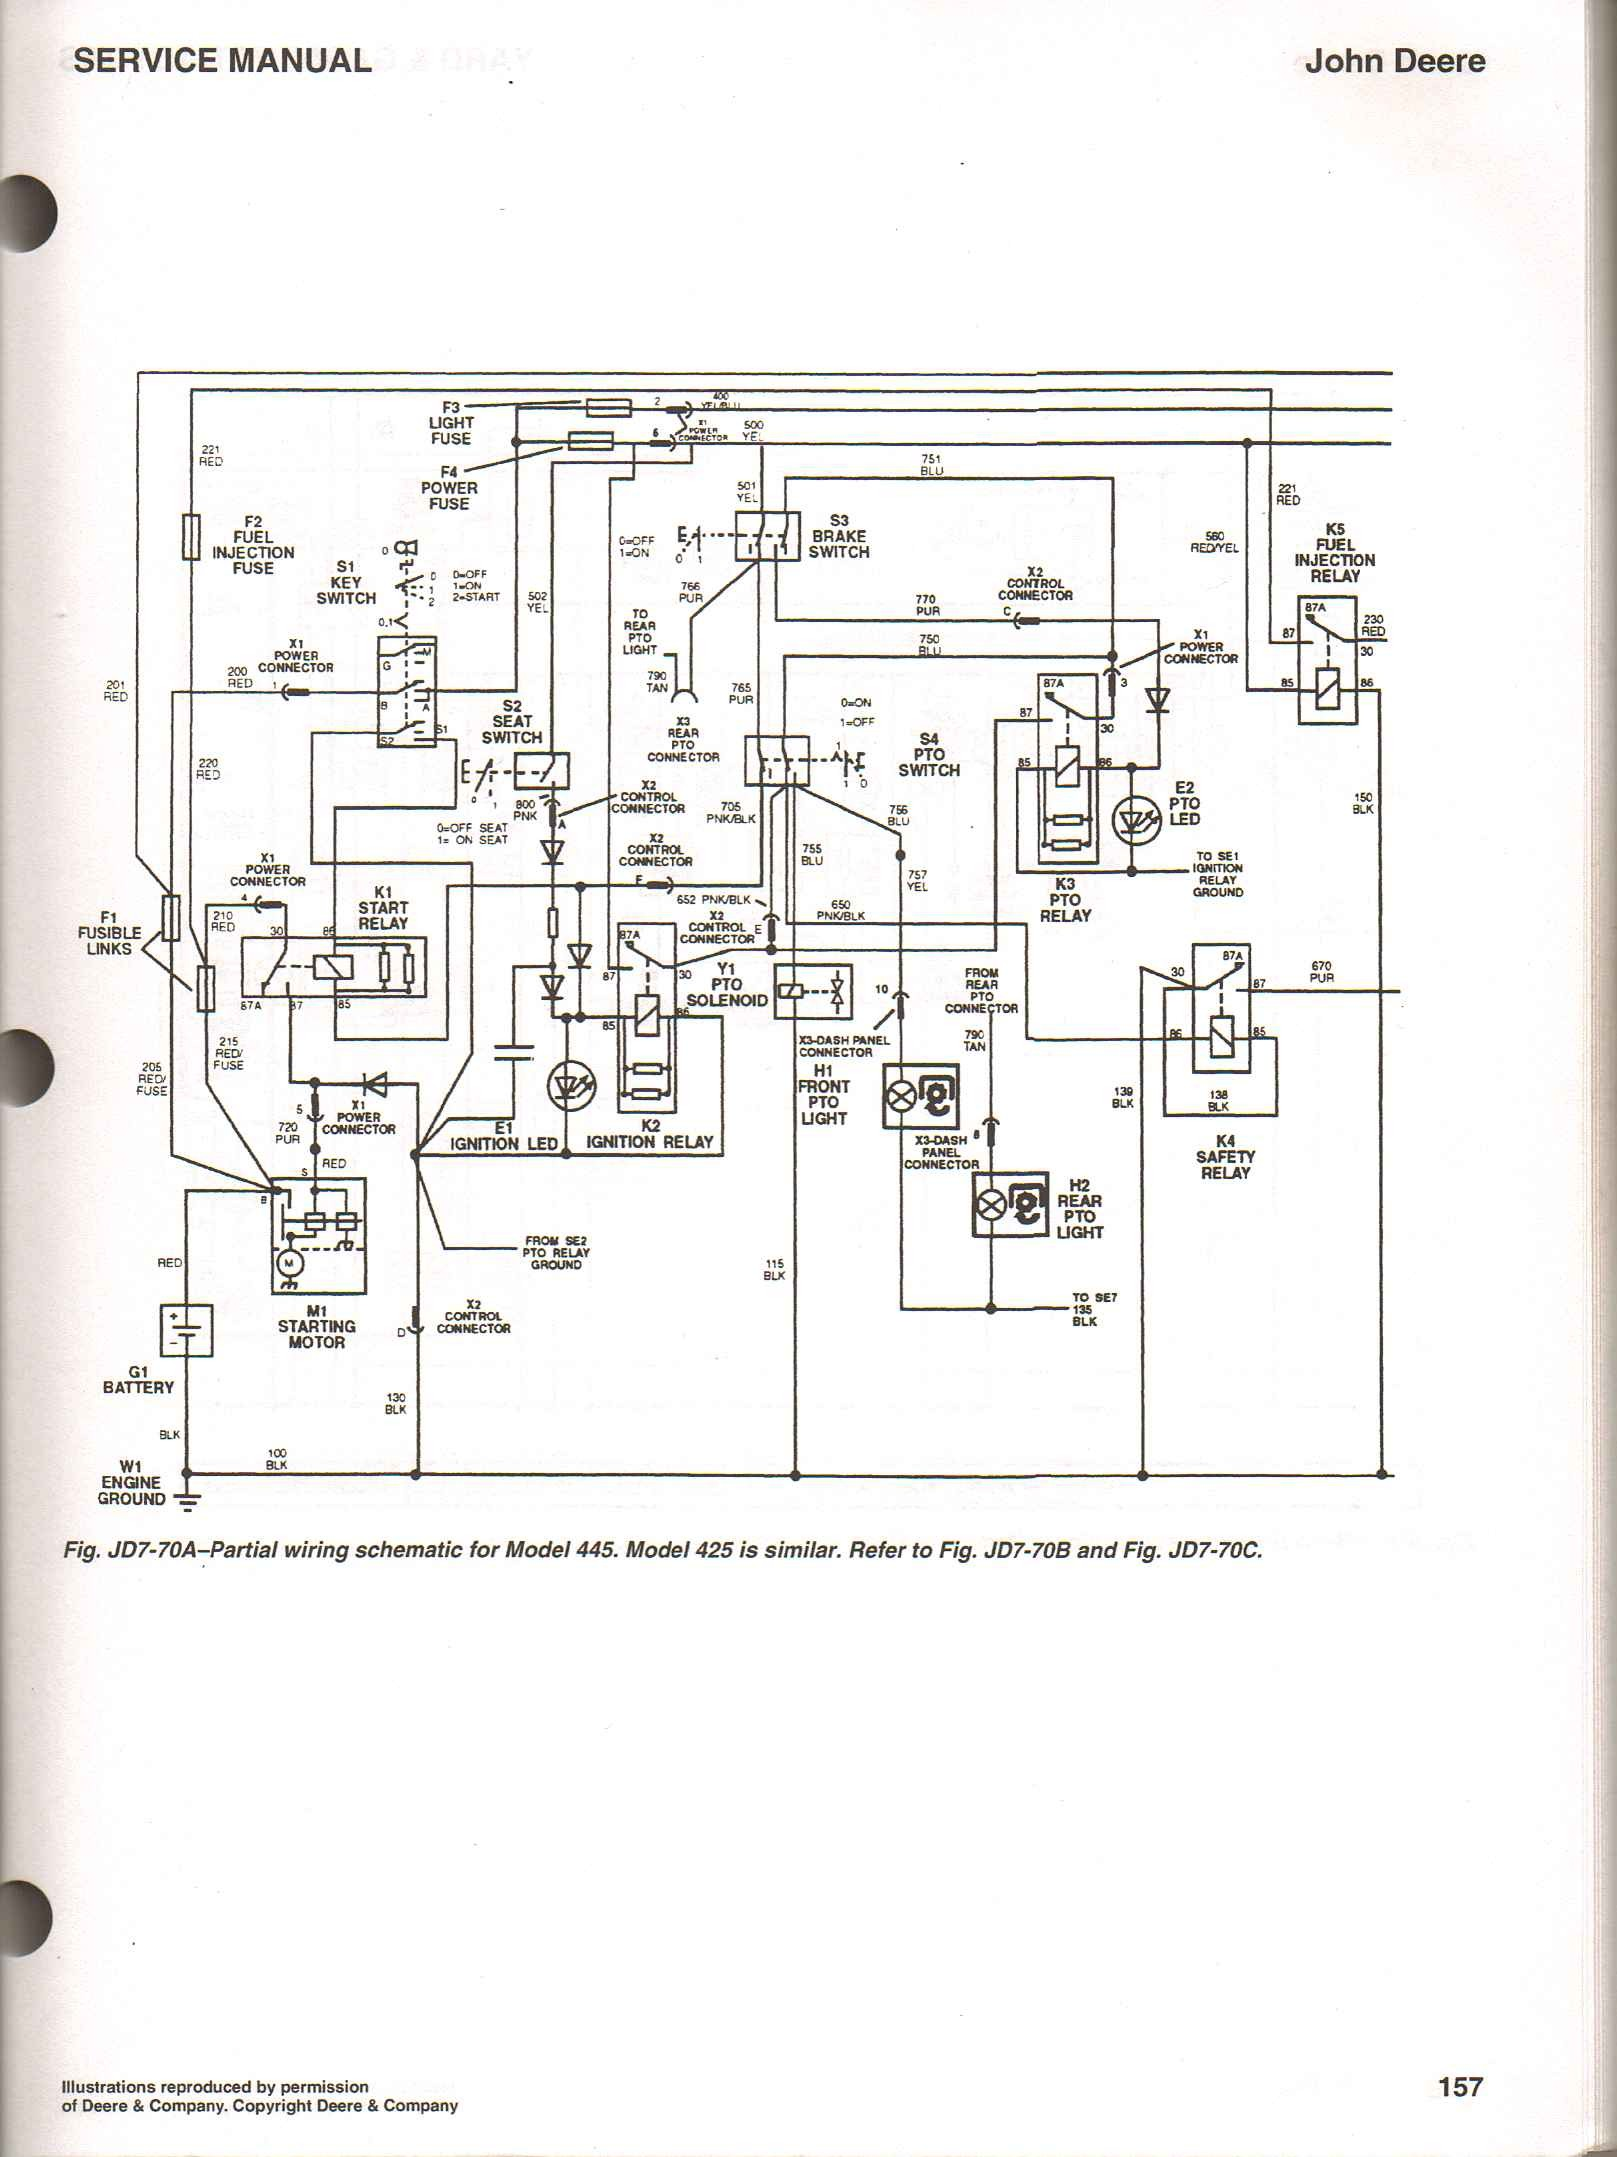 hight resolution of jd 425 wiring diagram wiring diagram for you john deere 425 lawn tractor mower wiring schematics